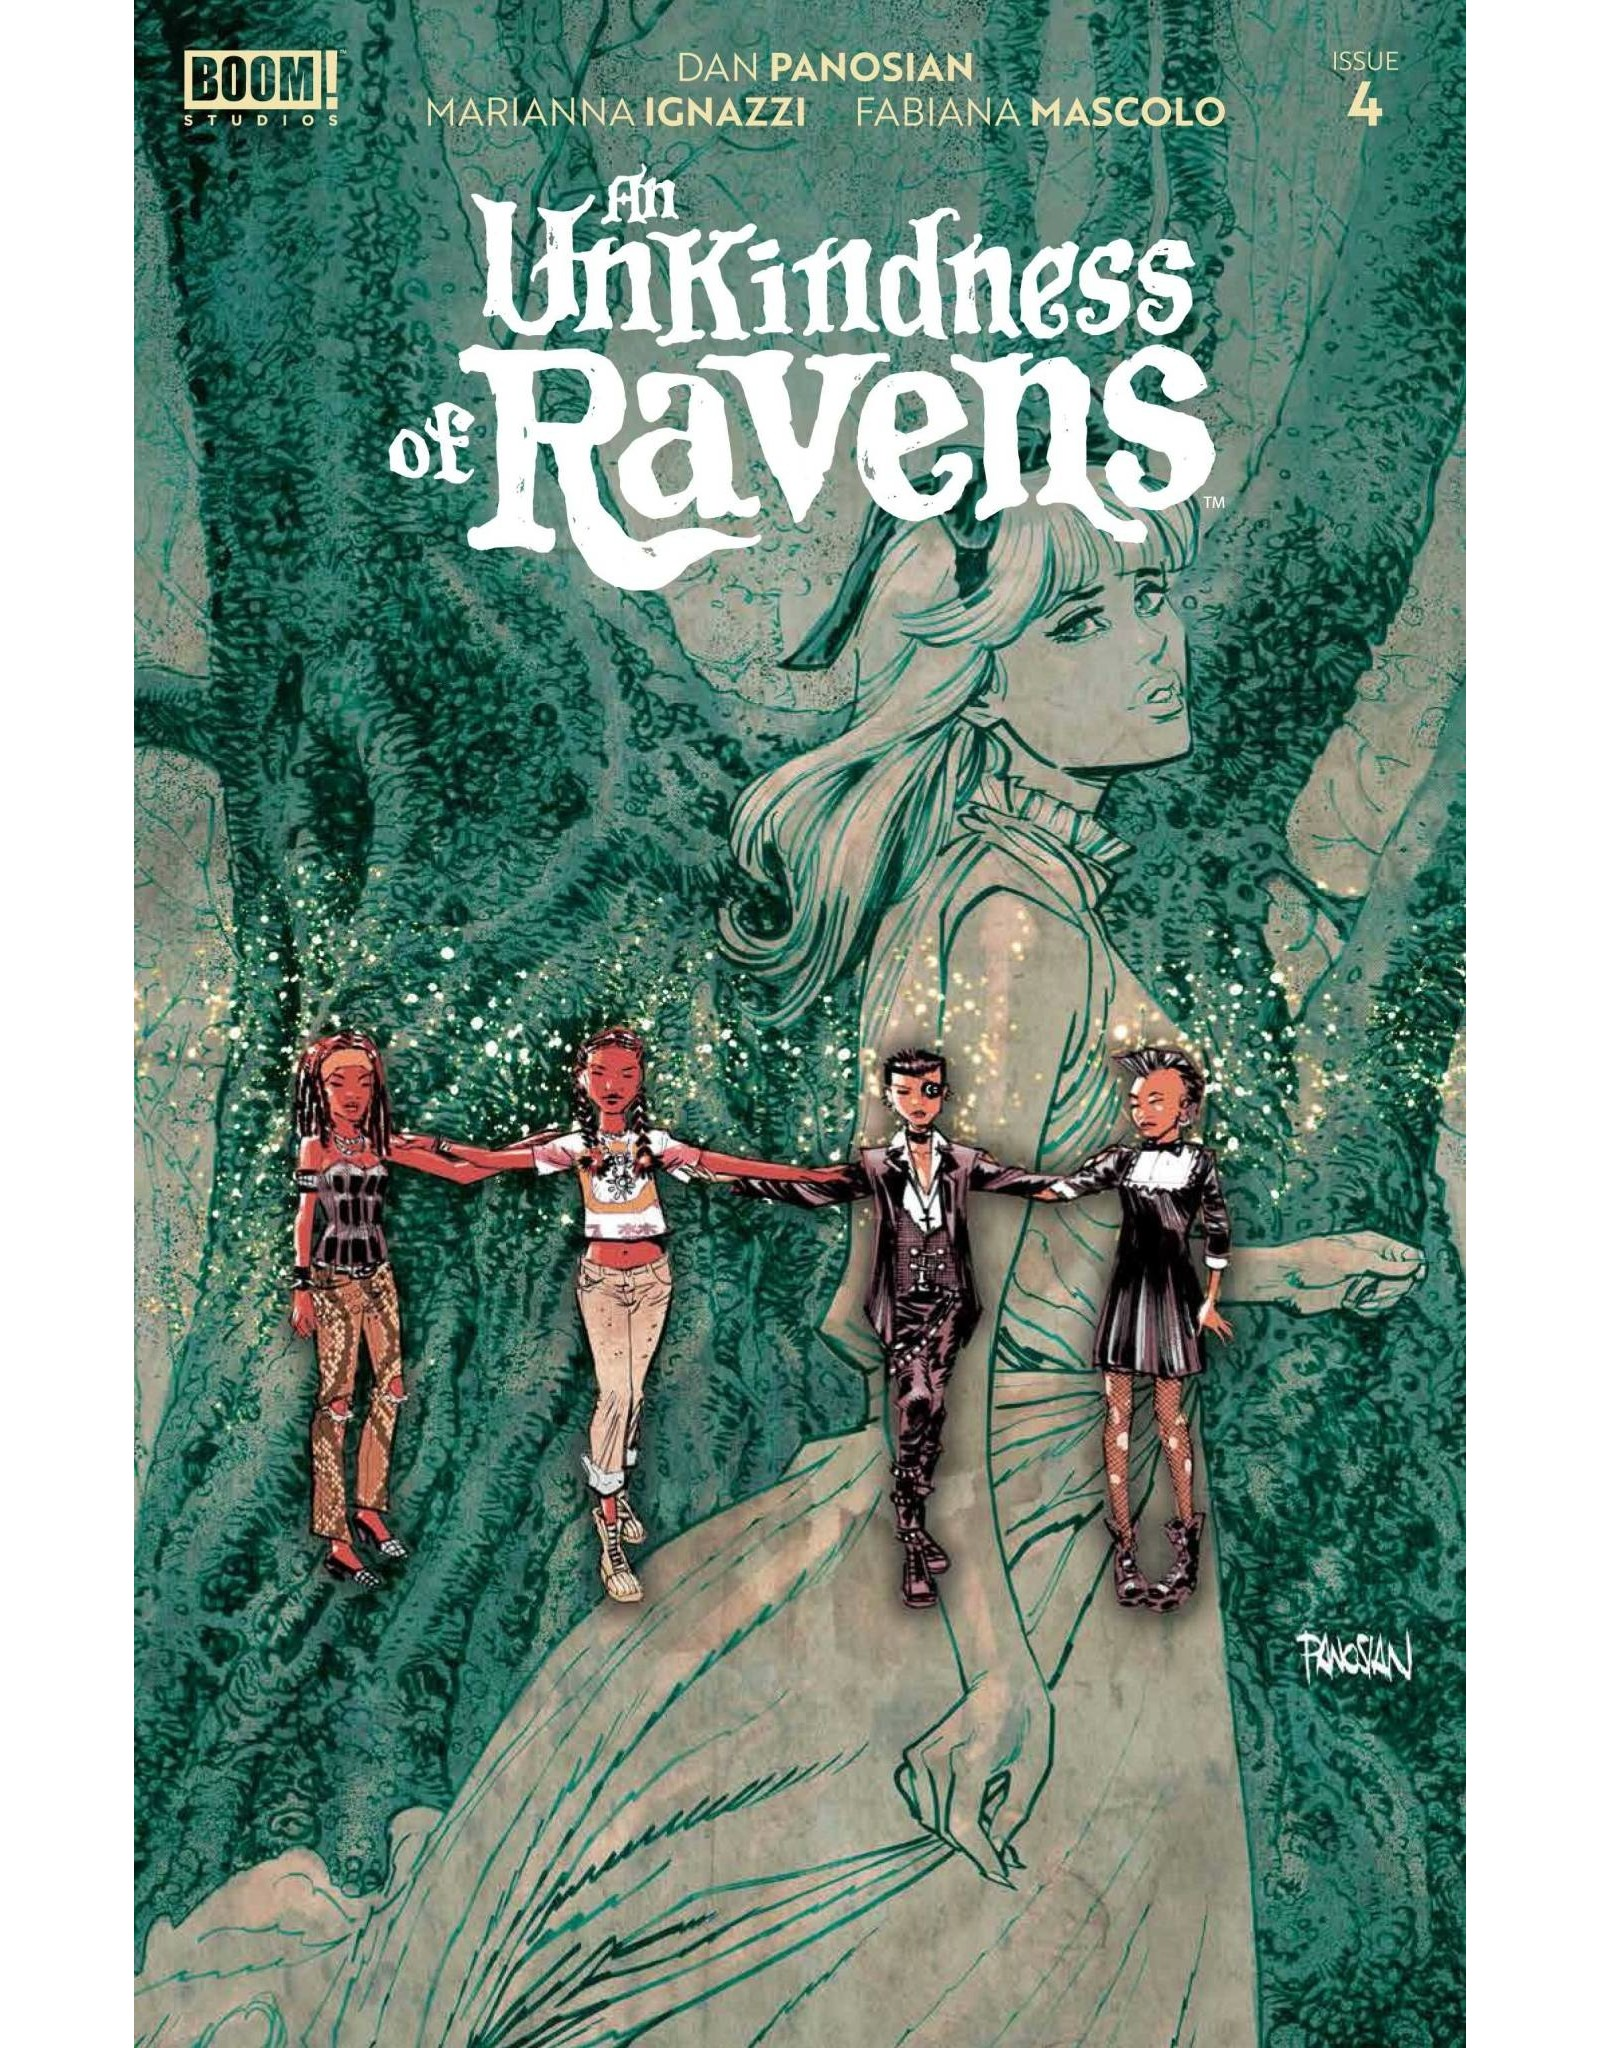 Boom! Studios UNKINDNESS OF RAVENS #4 (OF 4) CVR A MAIN